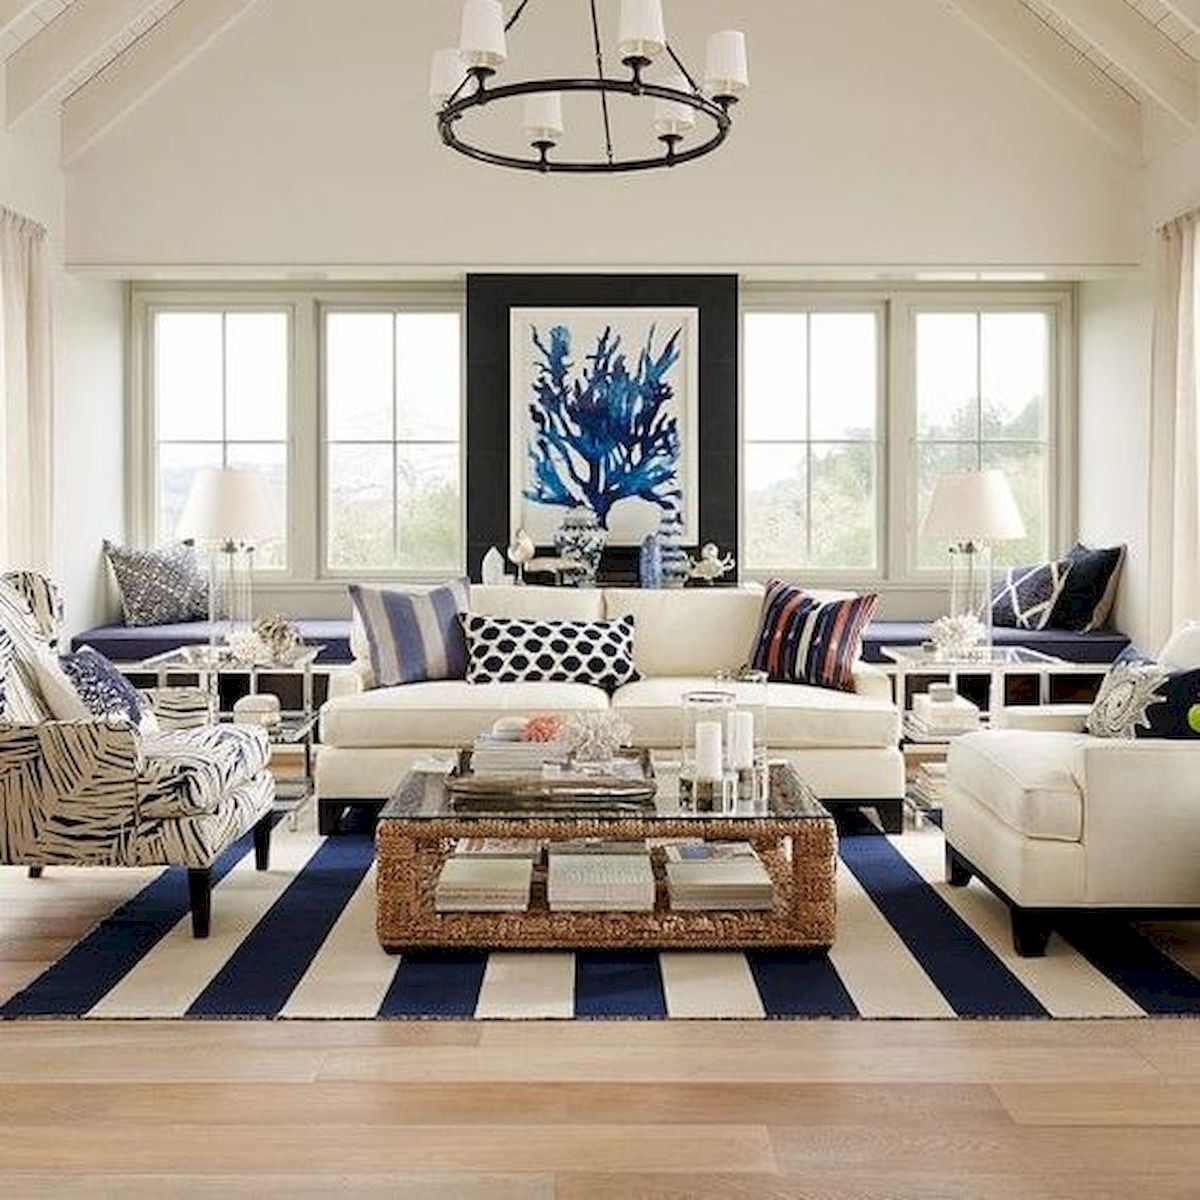 49 Elegant Living Room Decor Ideas (30)